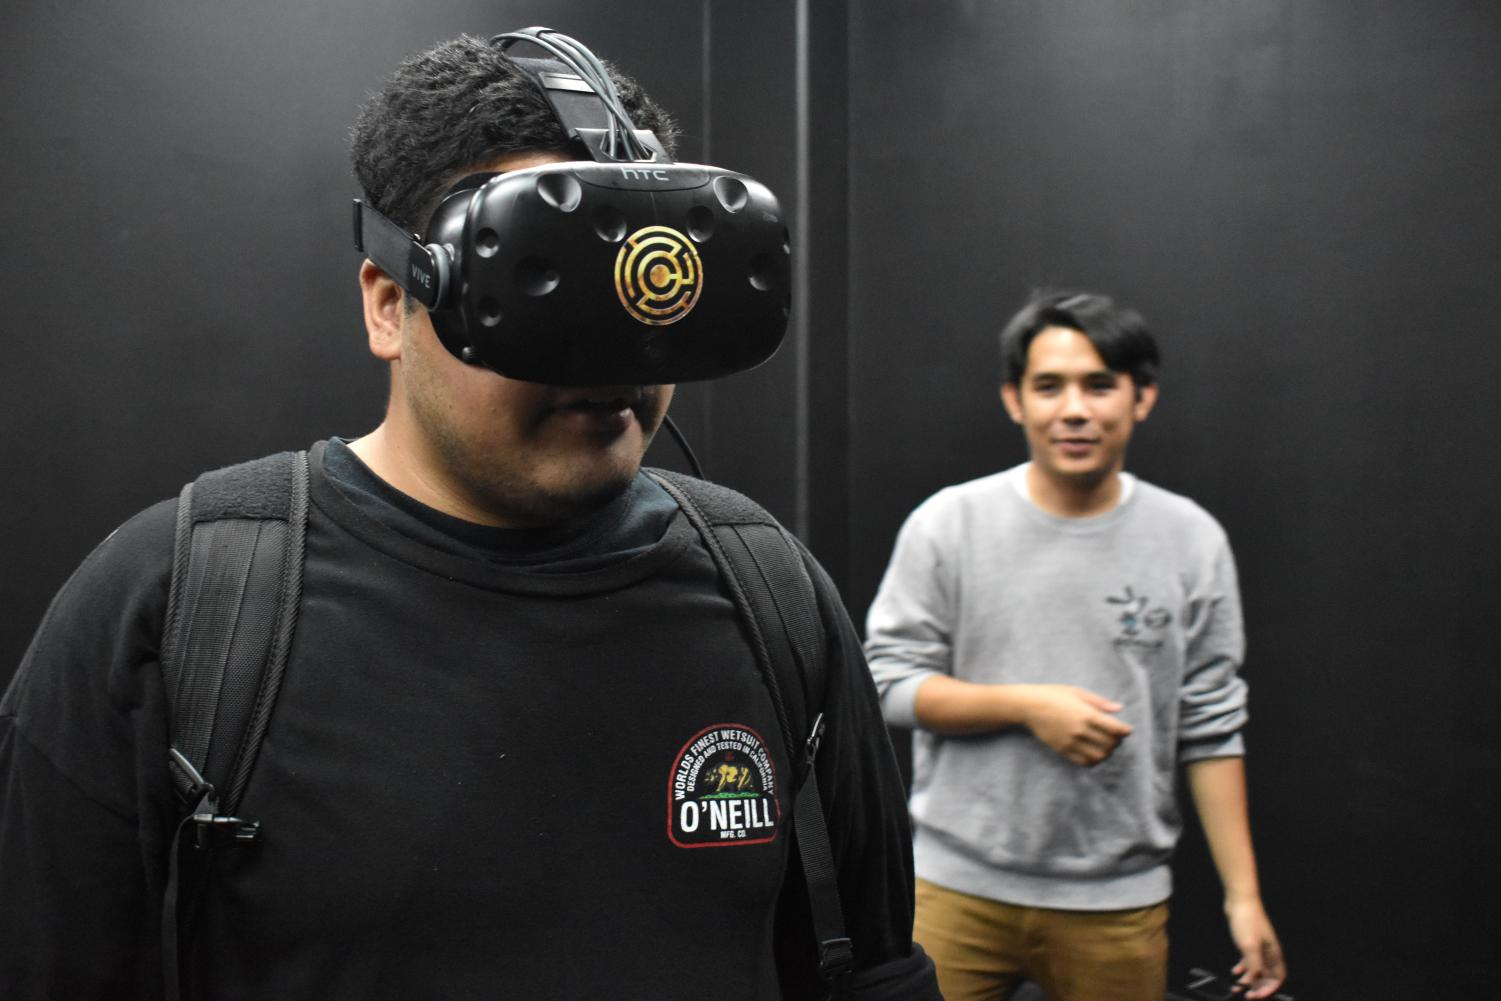 Chambers Escape Games utilizes the HTC Vive virtual reality headset, which uses room scale tracking technology to determine a player's position in the virtual world.